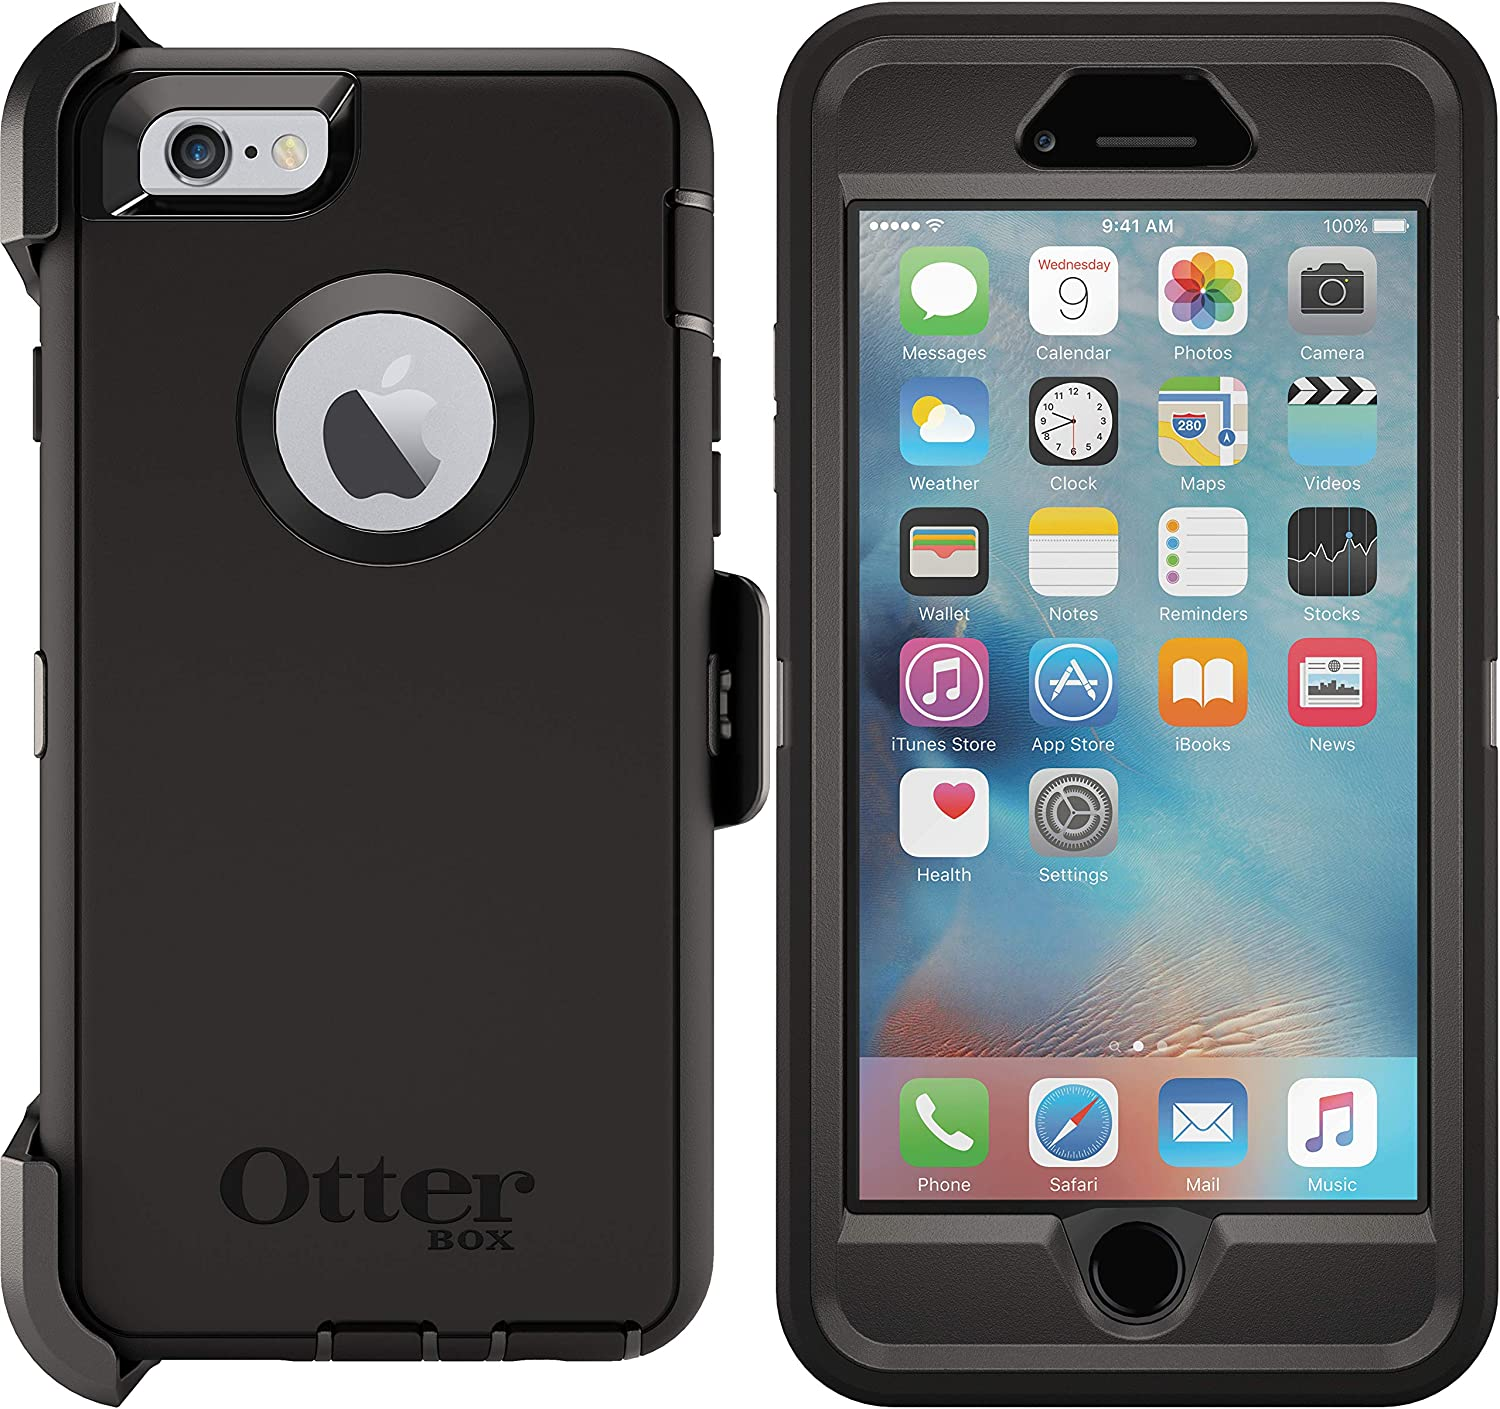 OtterBox Defender Series Case for iPhone 6s & iPhone 6 (NOT Plus) Non-Retail Packaging - Black